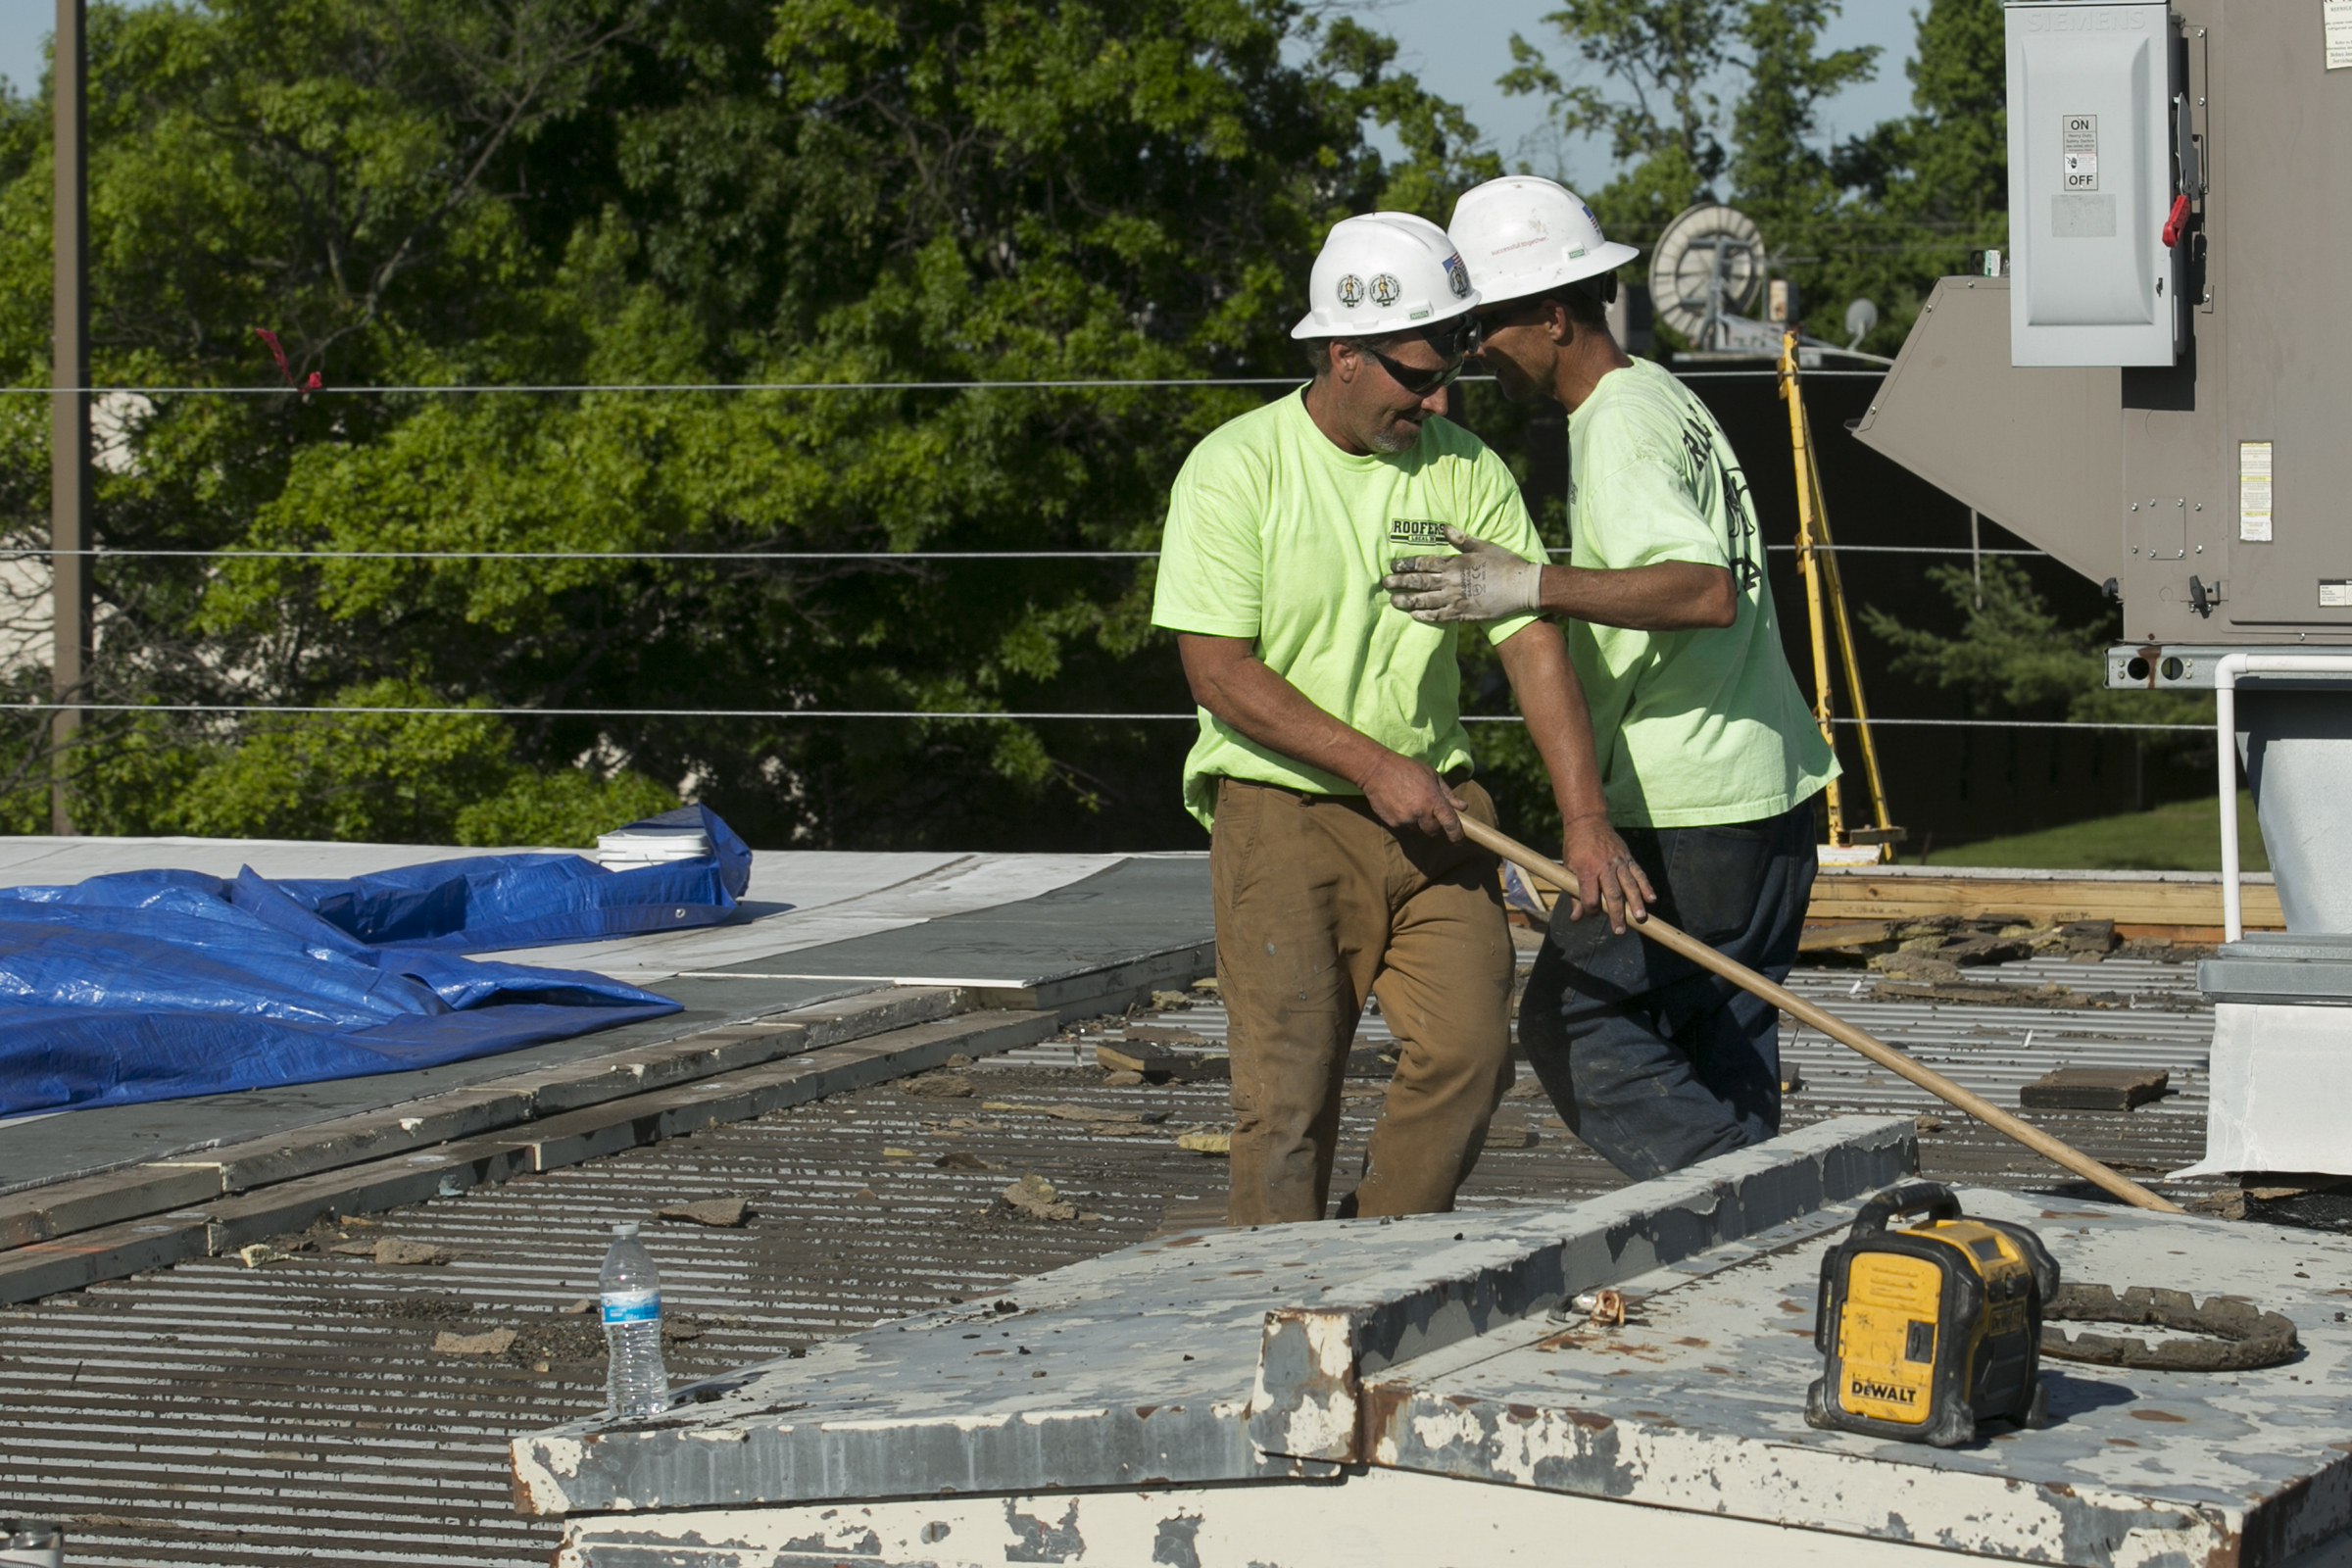 Rich Kinkade (left) and Danny Henry finish a discussion while clearing old roofing off the Bellmawr Post Office in Bellmawr, NJ, on the morning of Thursday, June 14, 2018. Construction company EDA Contractors is training its roofers and carpenters, some of its most masculine workers, how to be emotionally intelligent. MAGGIE LOESCH / Staff Photographer